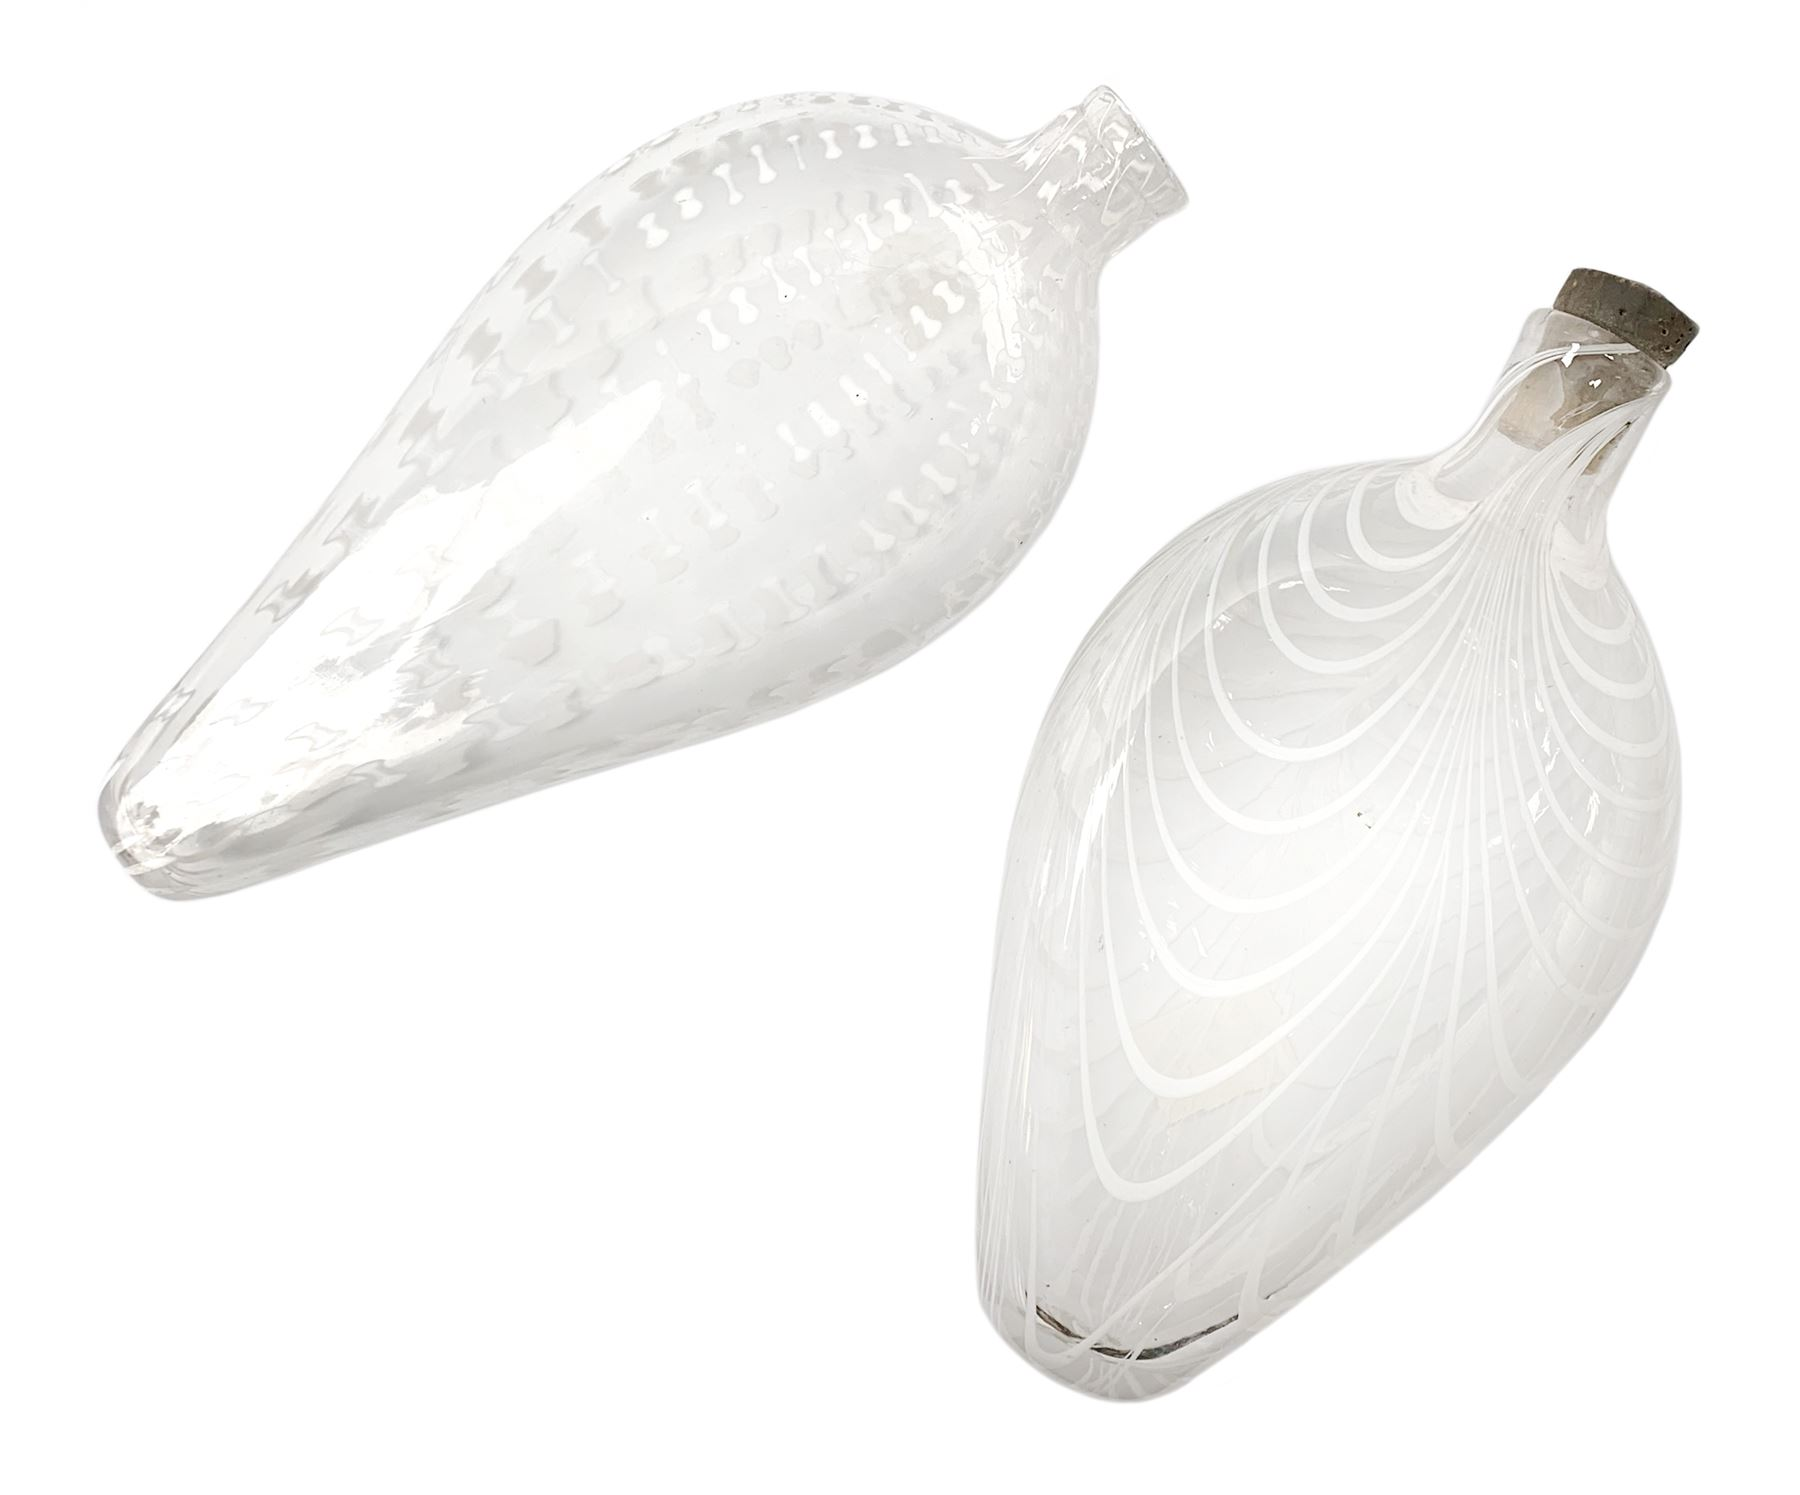 19th century Nailsea glass flask of compressed ovoid form